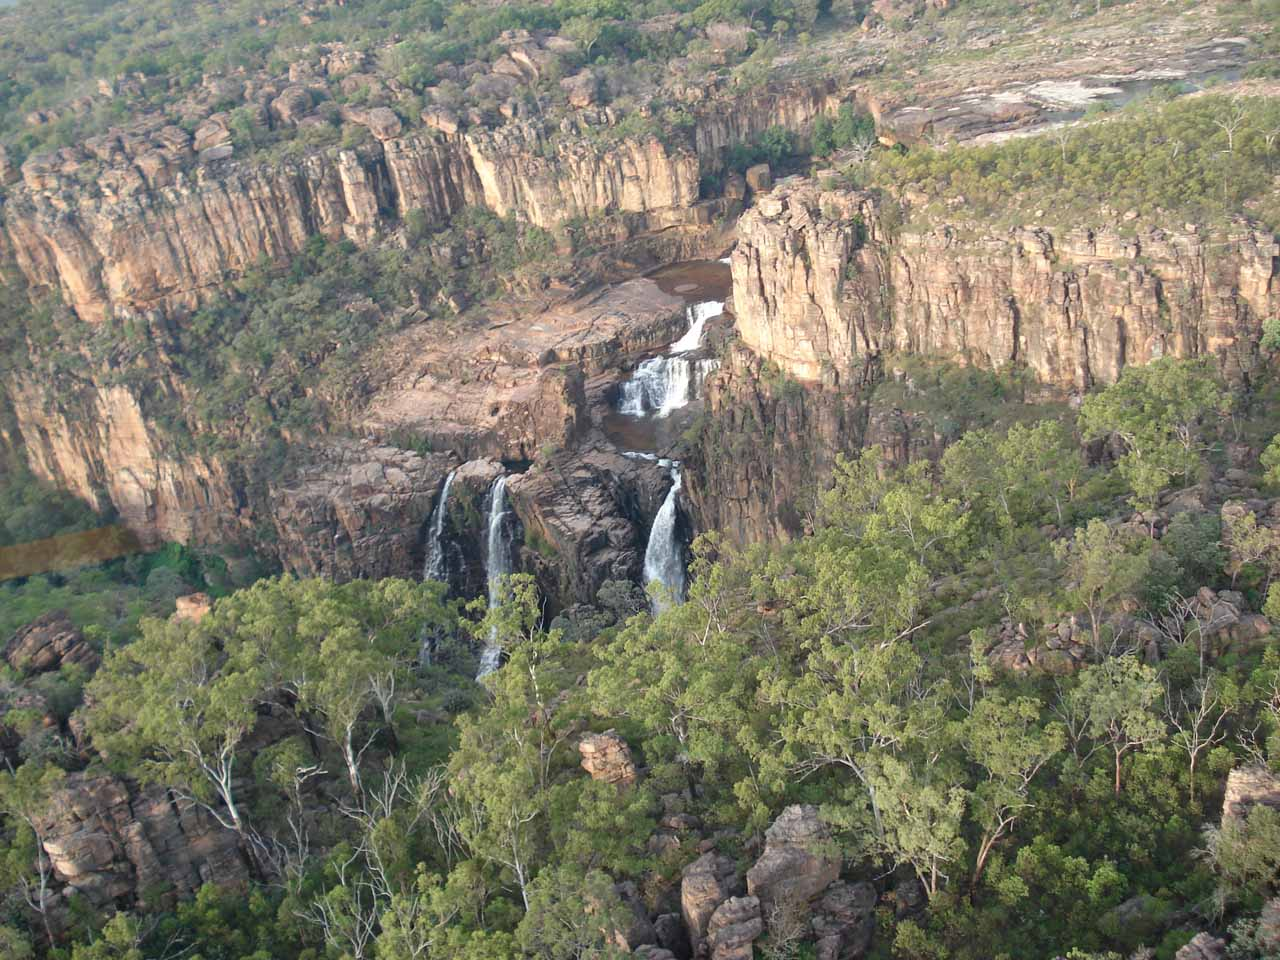 Our last look at Twin Falls as we were flying away; showing its full context with the surrounding escarpments and bushlands